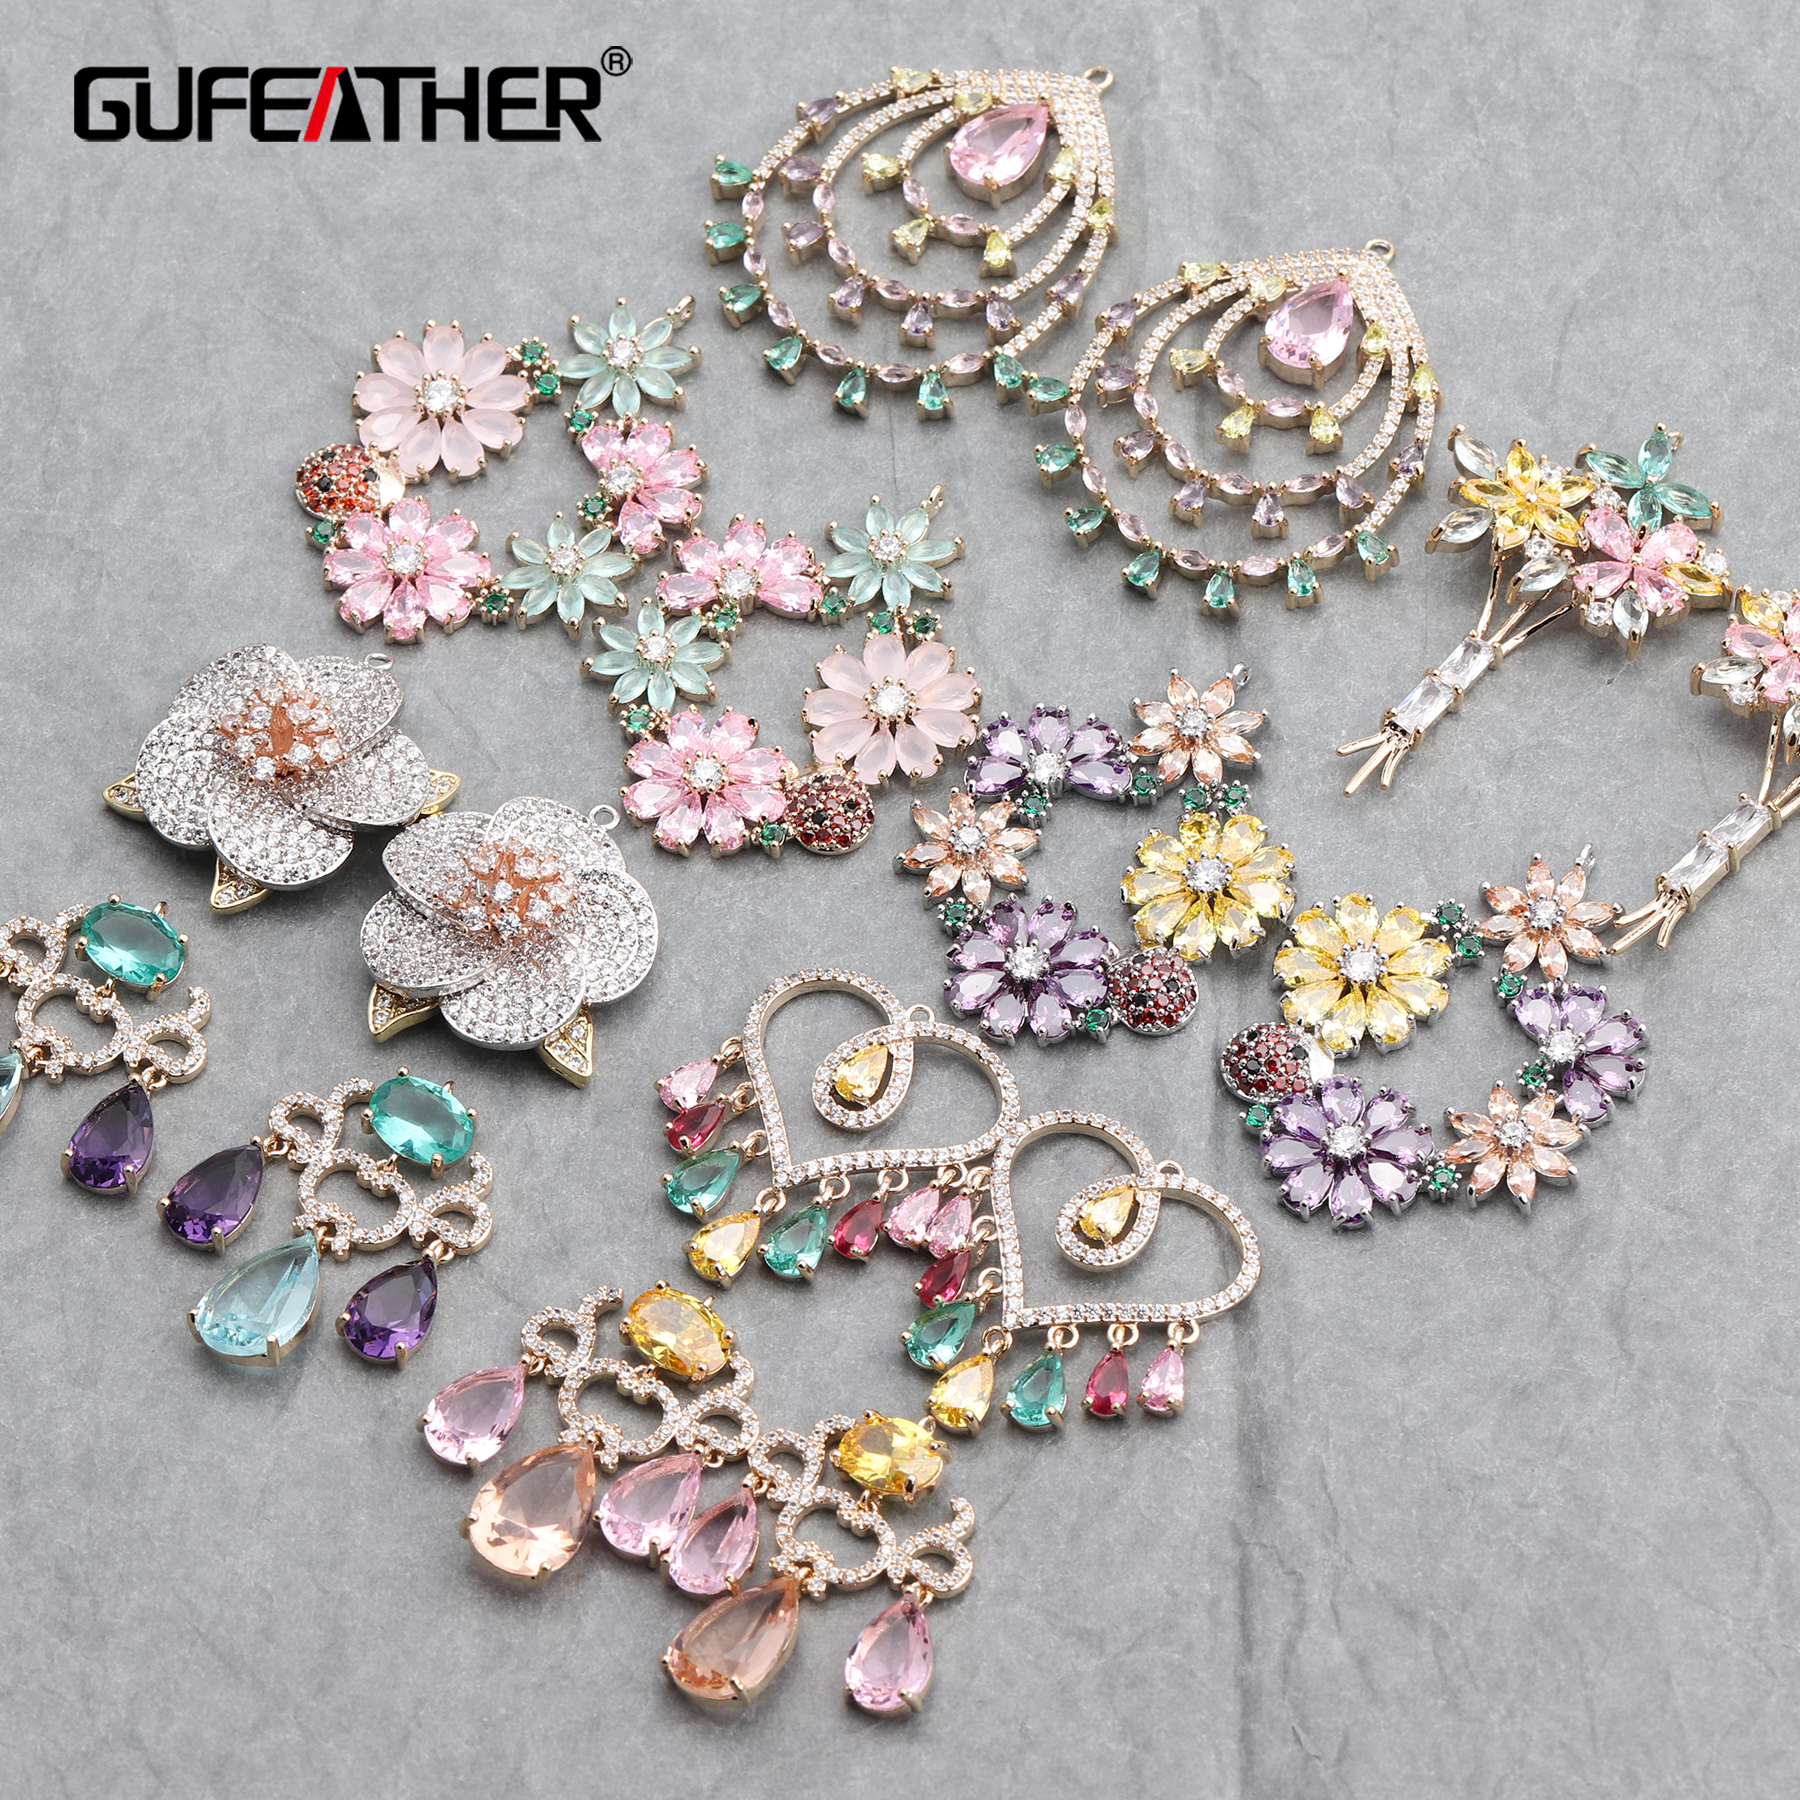 GUFEATHER M644,jewelry Accessories,diy Zircon Accessories,hand Made,jewelry Findings,charms,jewelry Making,diy Earrings,2pcs/lot